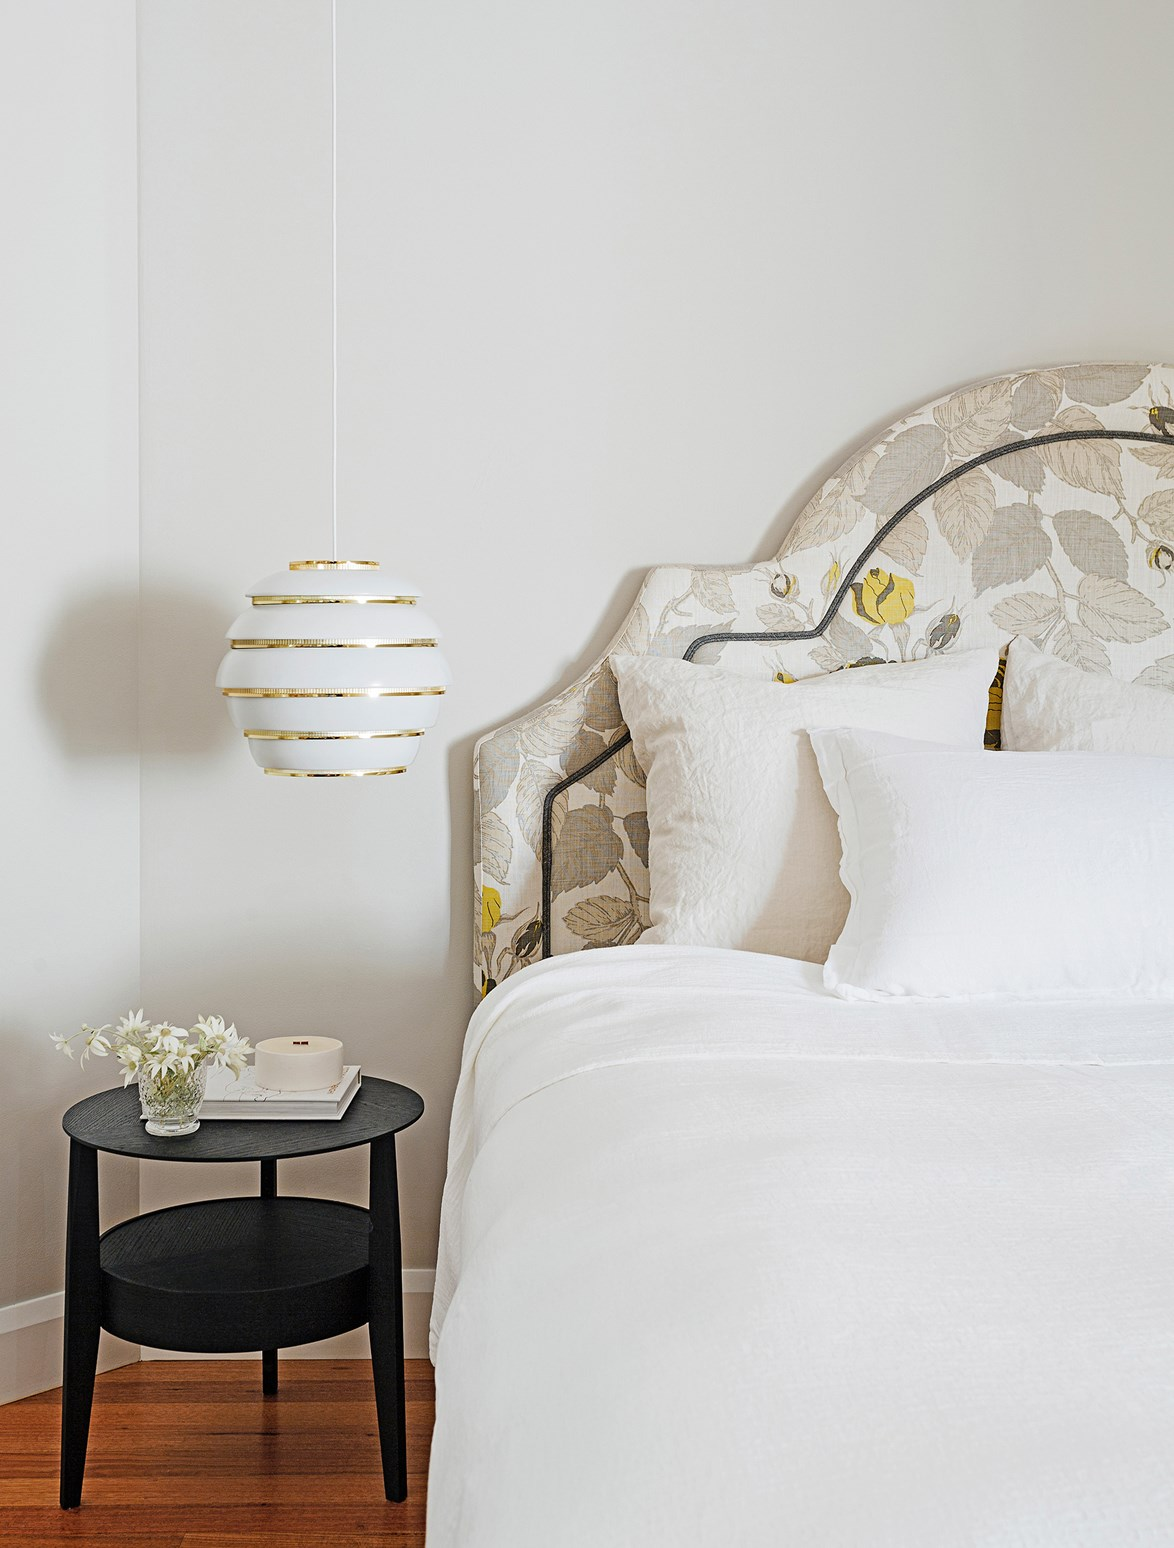 "Crisp white sheets, fluffy pillows and a beautiful upholstered bedhead create a soft and dreamy place to rest in the bedroom of this [feminine Sydney home](https://www.homestolove.com.au/gallery-master-stroke-feminine-sydney-house-design-1-2021|target=""_blank""). The brass pendant adds a welcomed touch of bling. Photo: Felix Forest / *real living*"